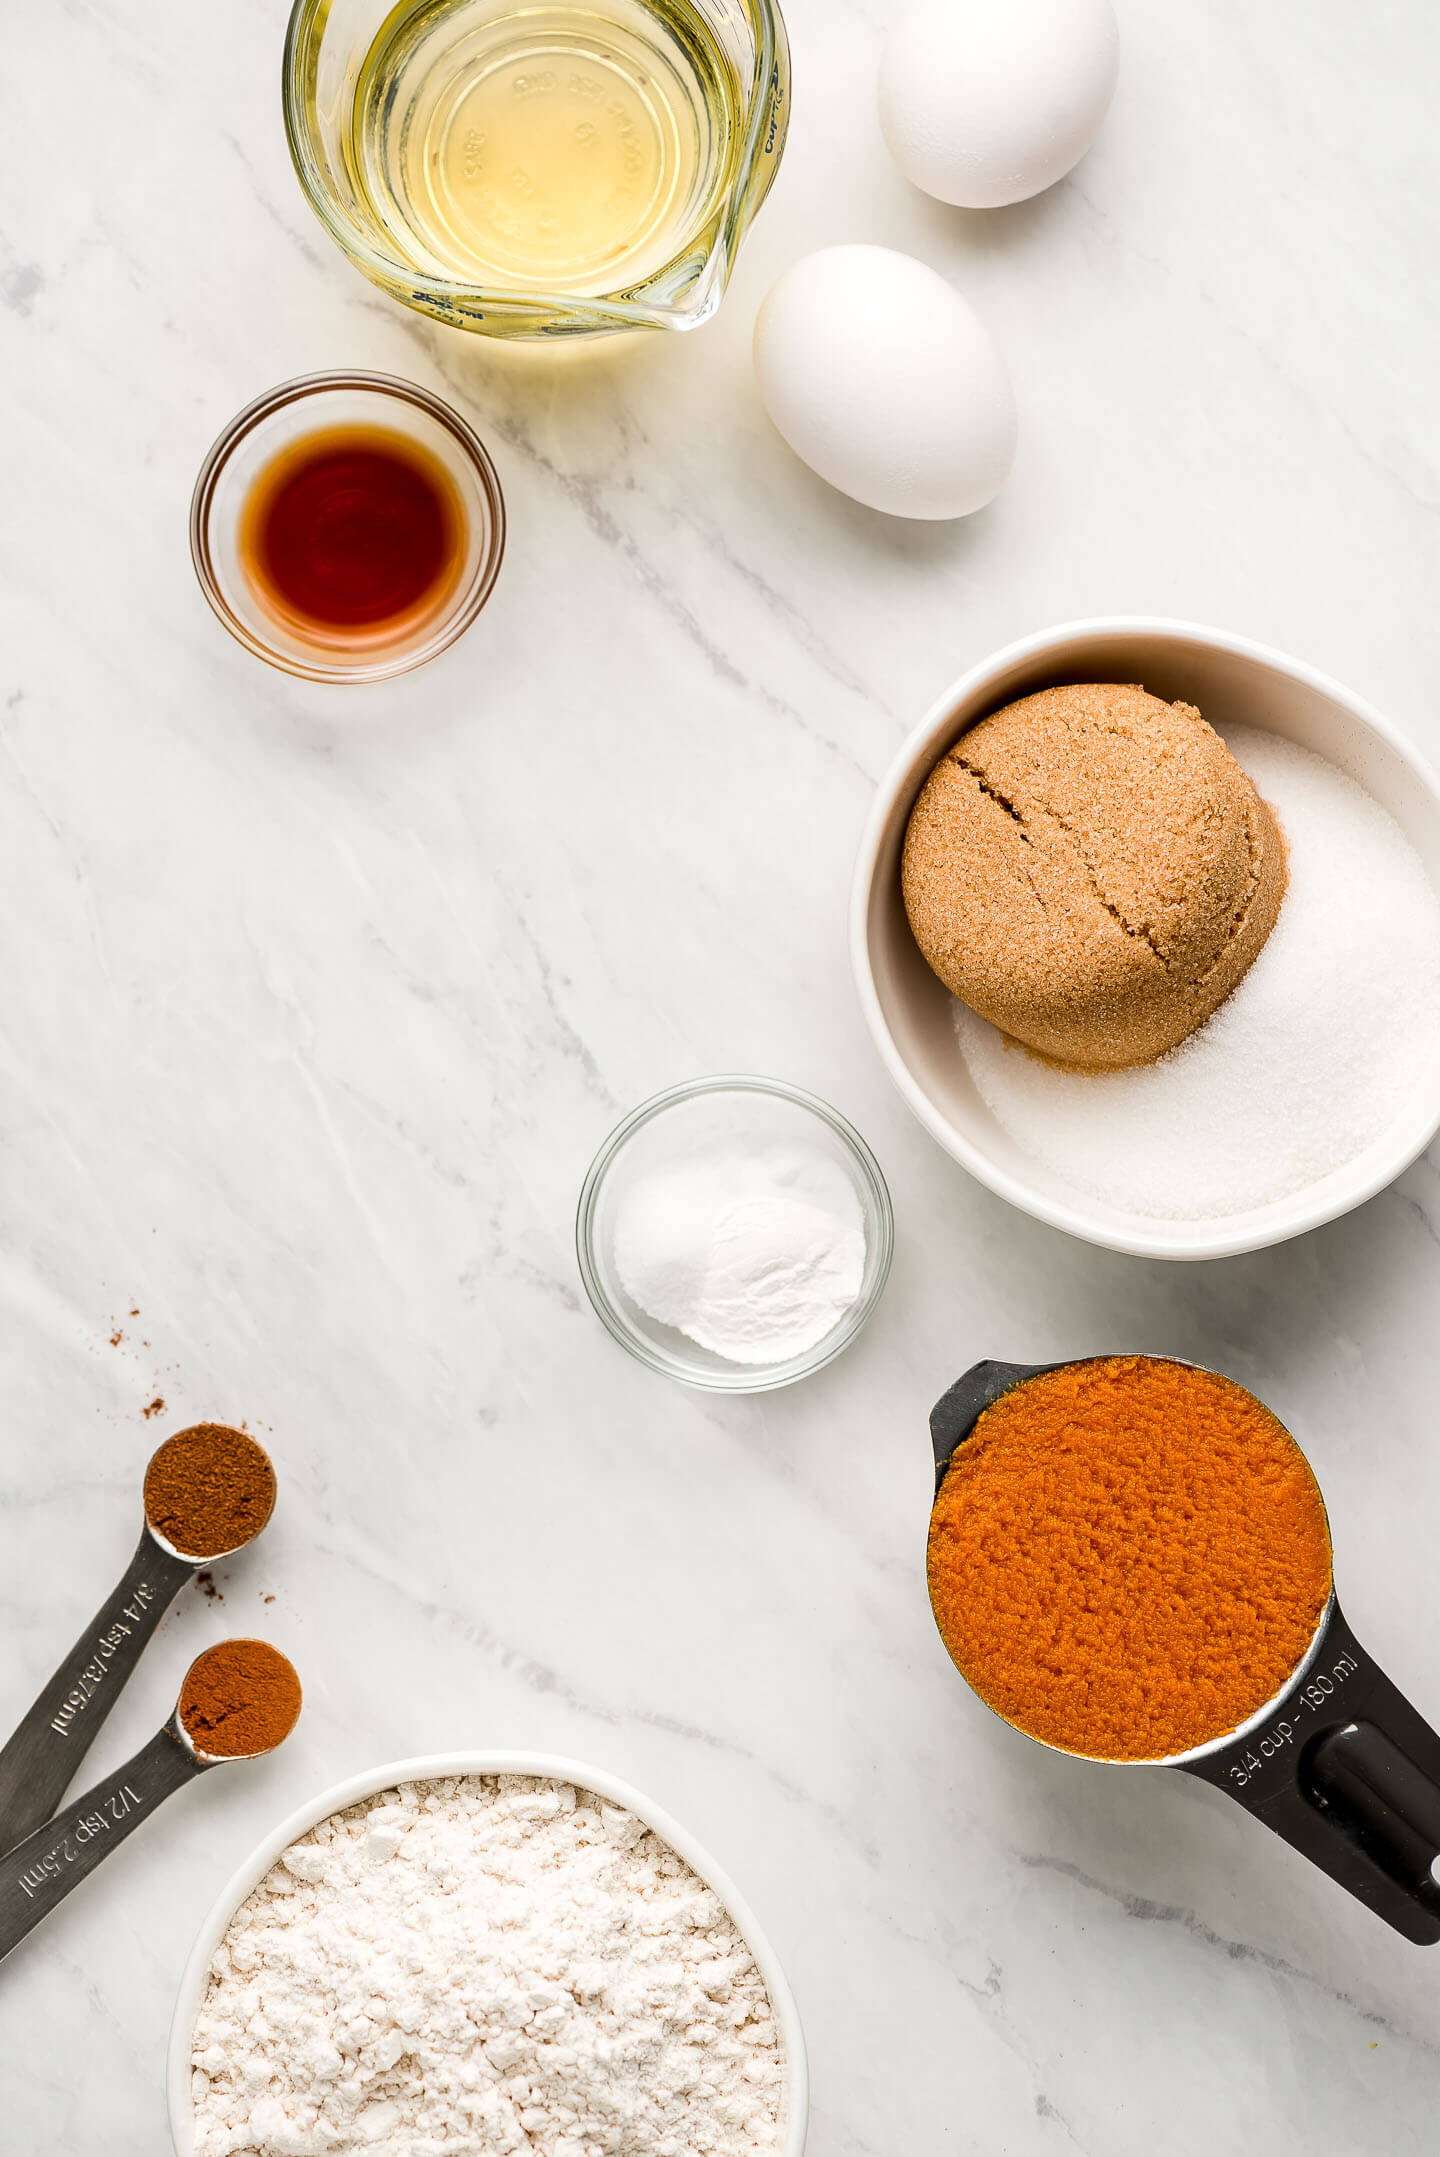 Ingredients on a marble surface- oil, eggs, vanilla extract, brown and granulated sugar, baking soda, pumpkin puree, flour, and warm spices.